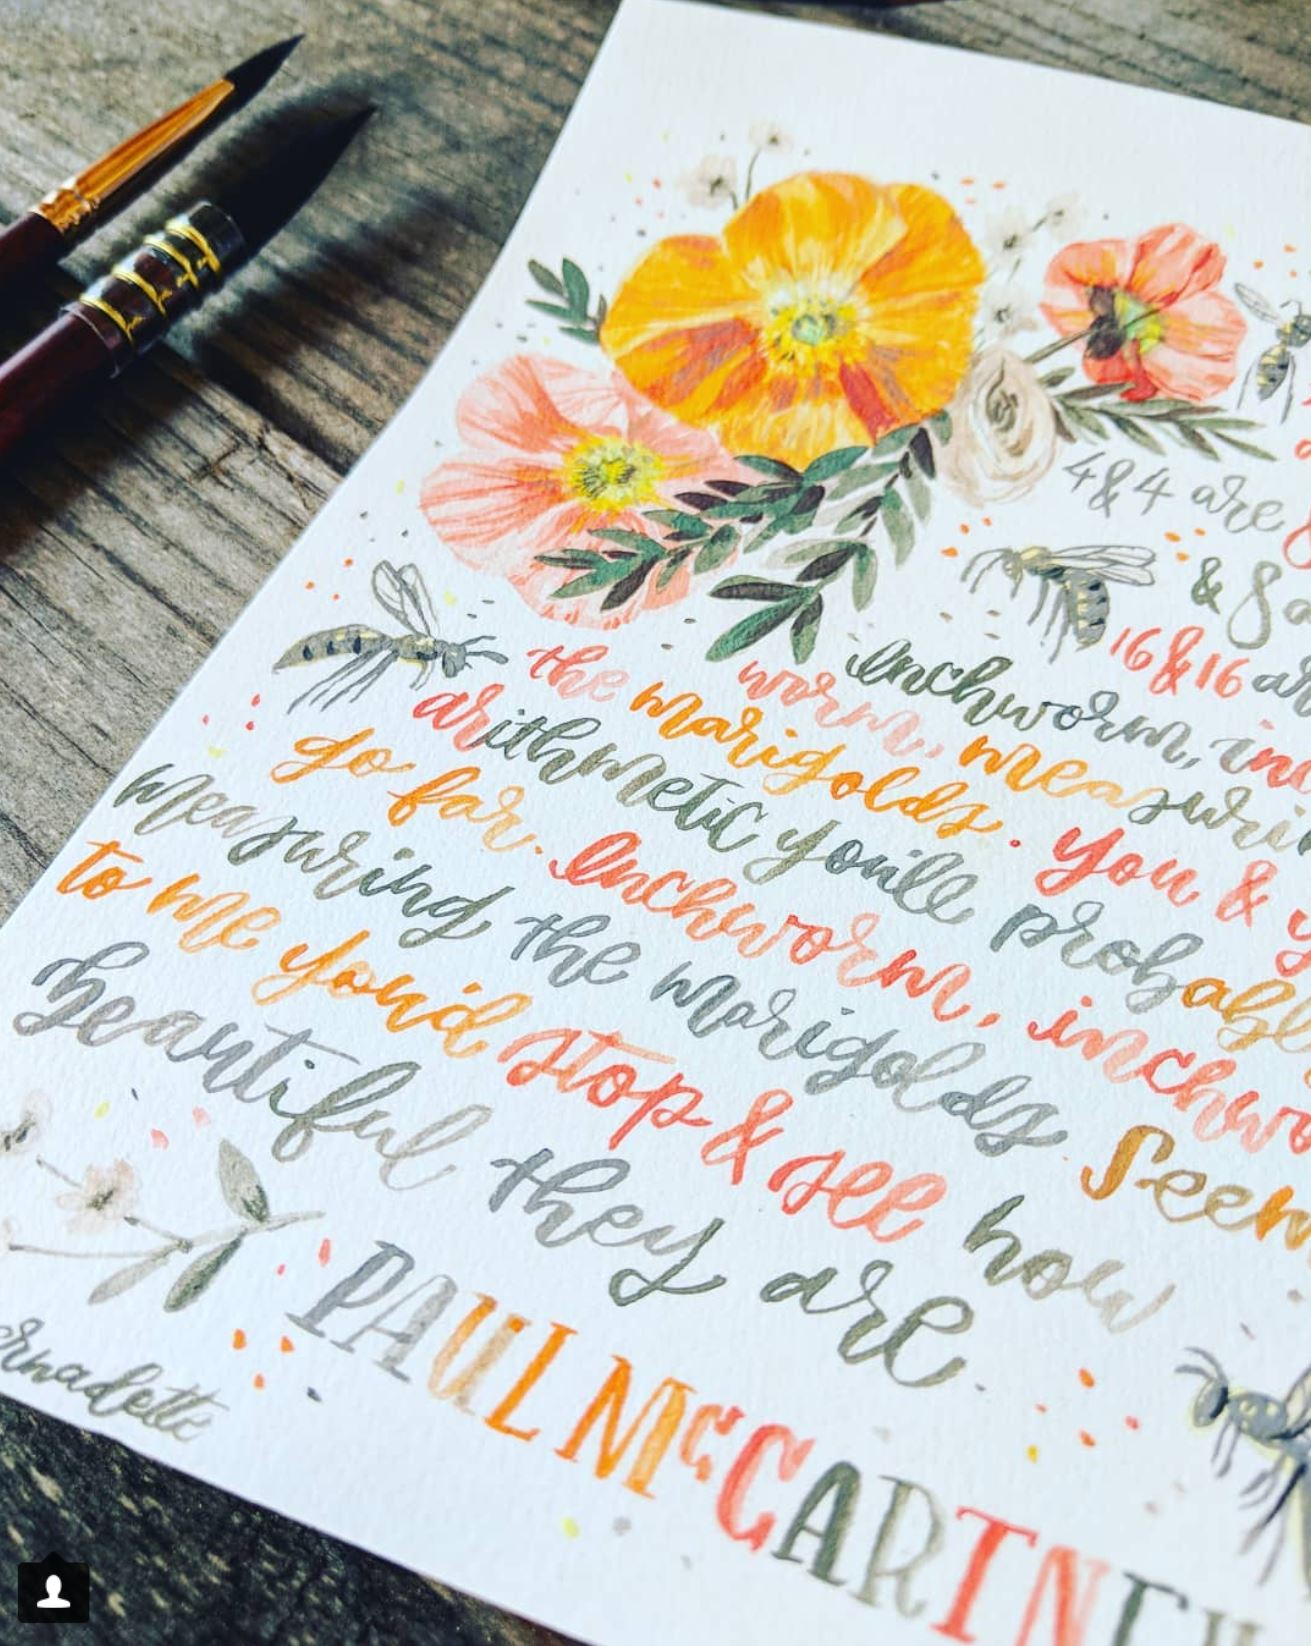 song lyric illustration in watercolor